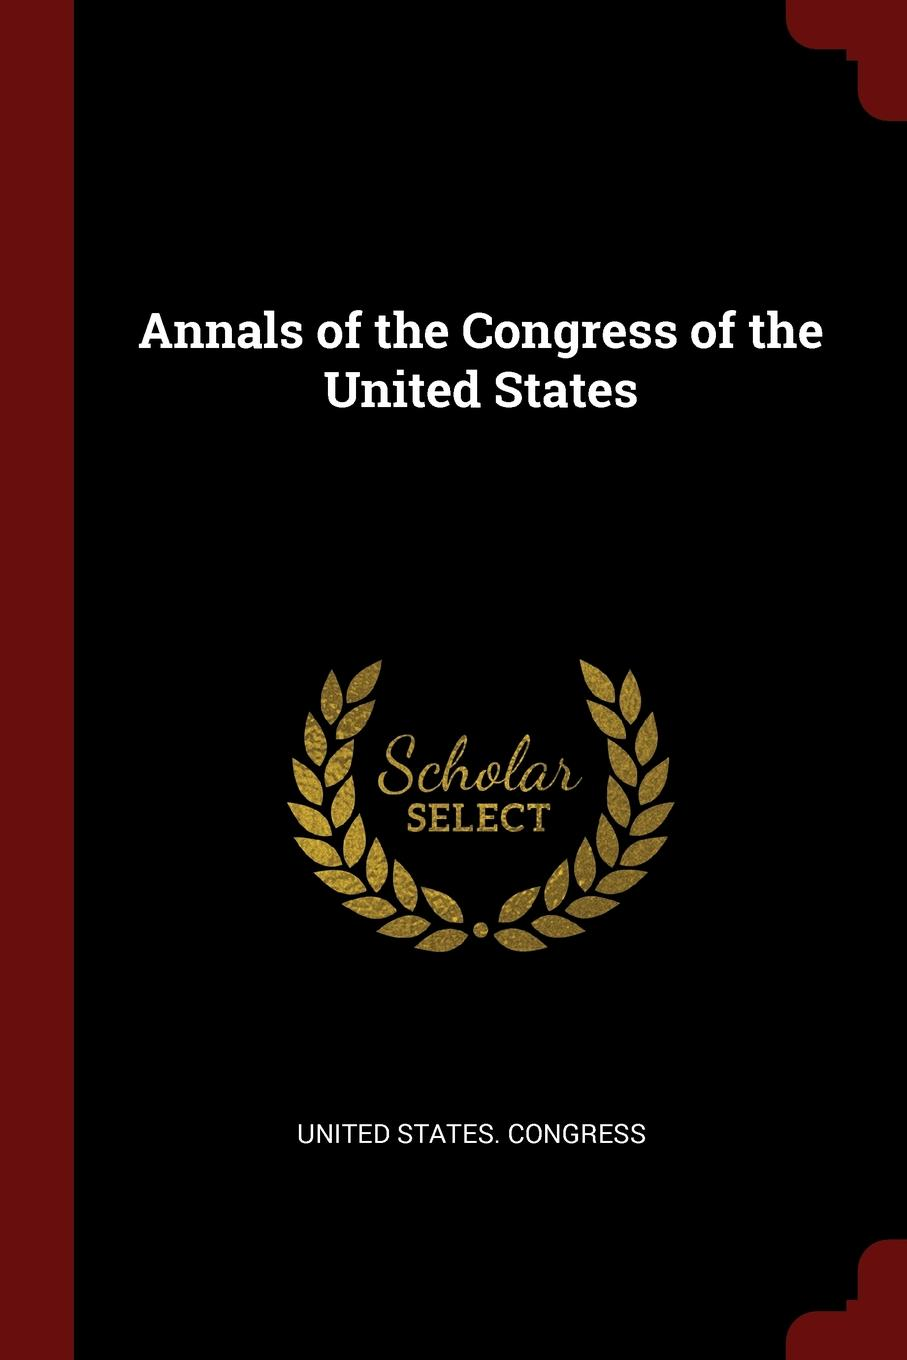 Annals of the Congress United States